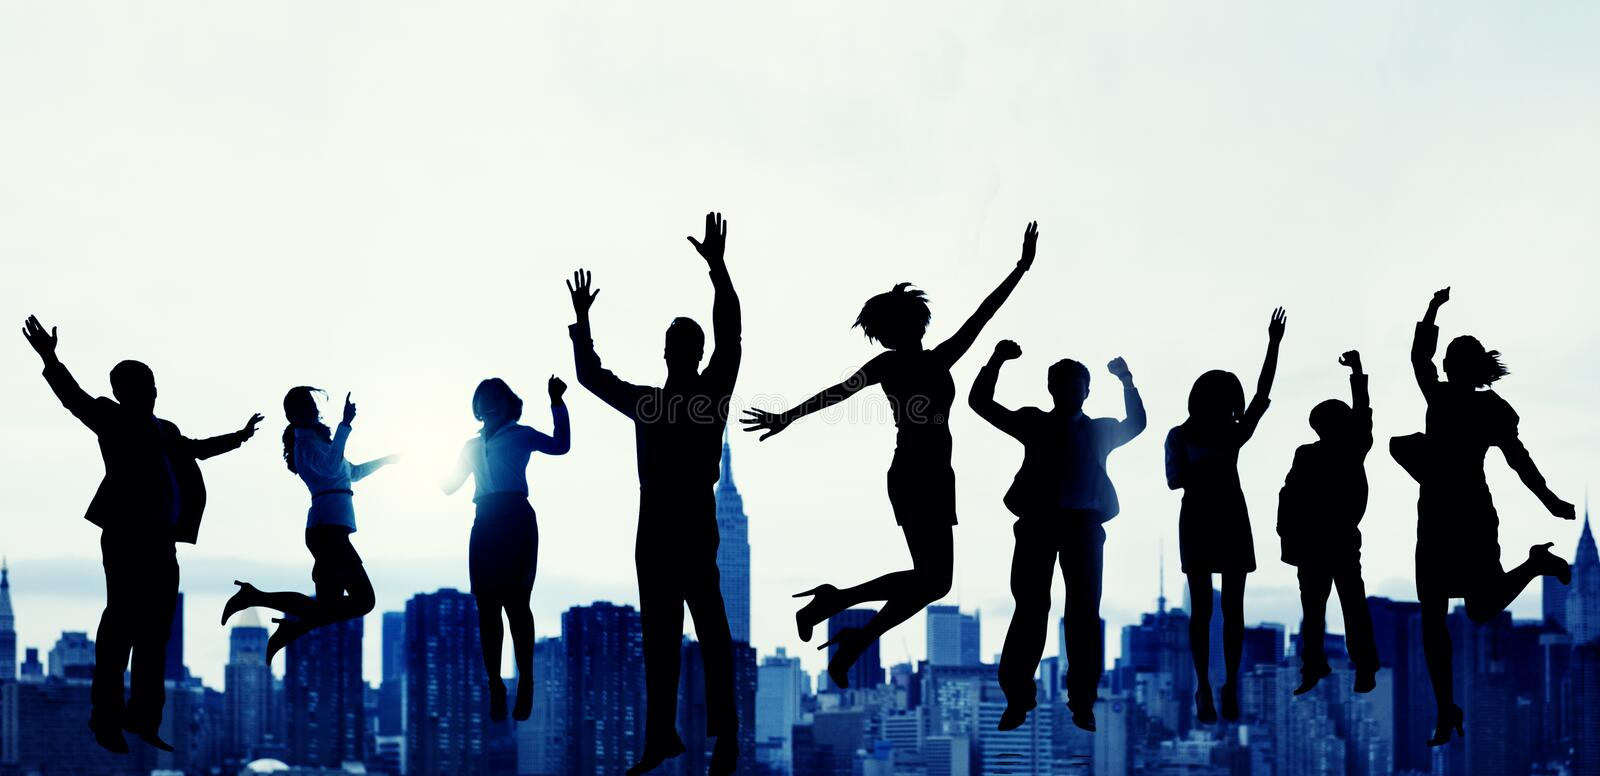 Business People Success Excitement Victory Achievement Concept royalty free stock images